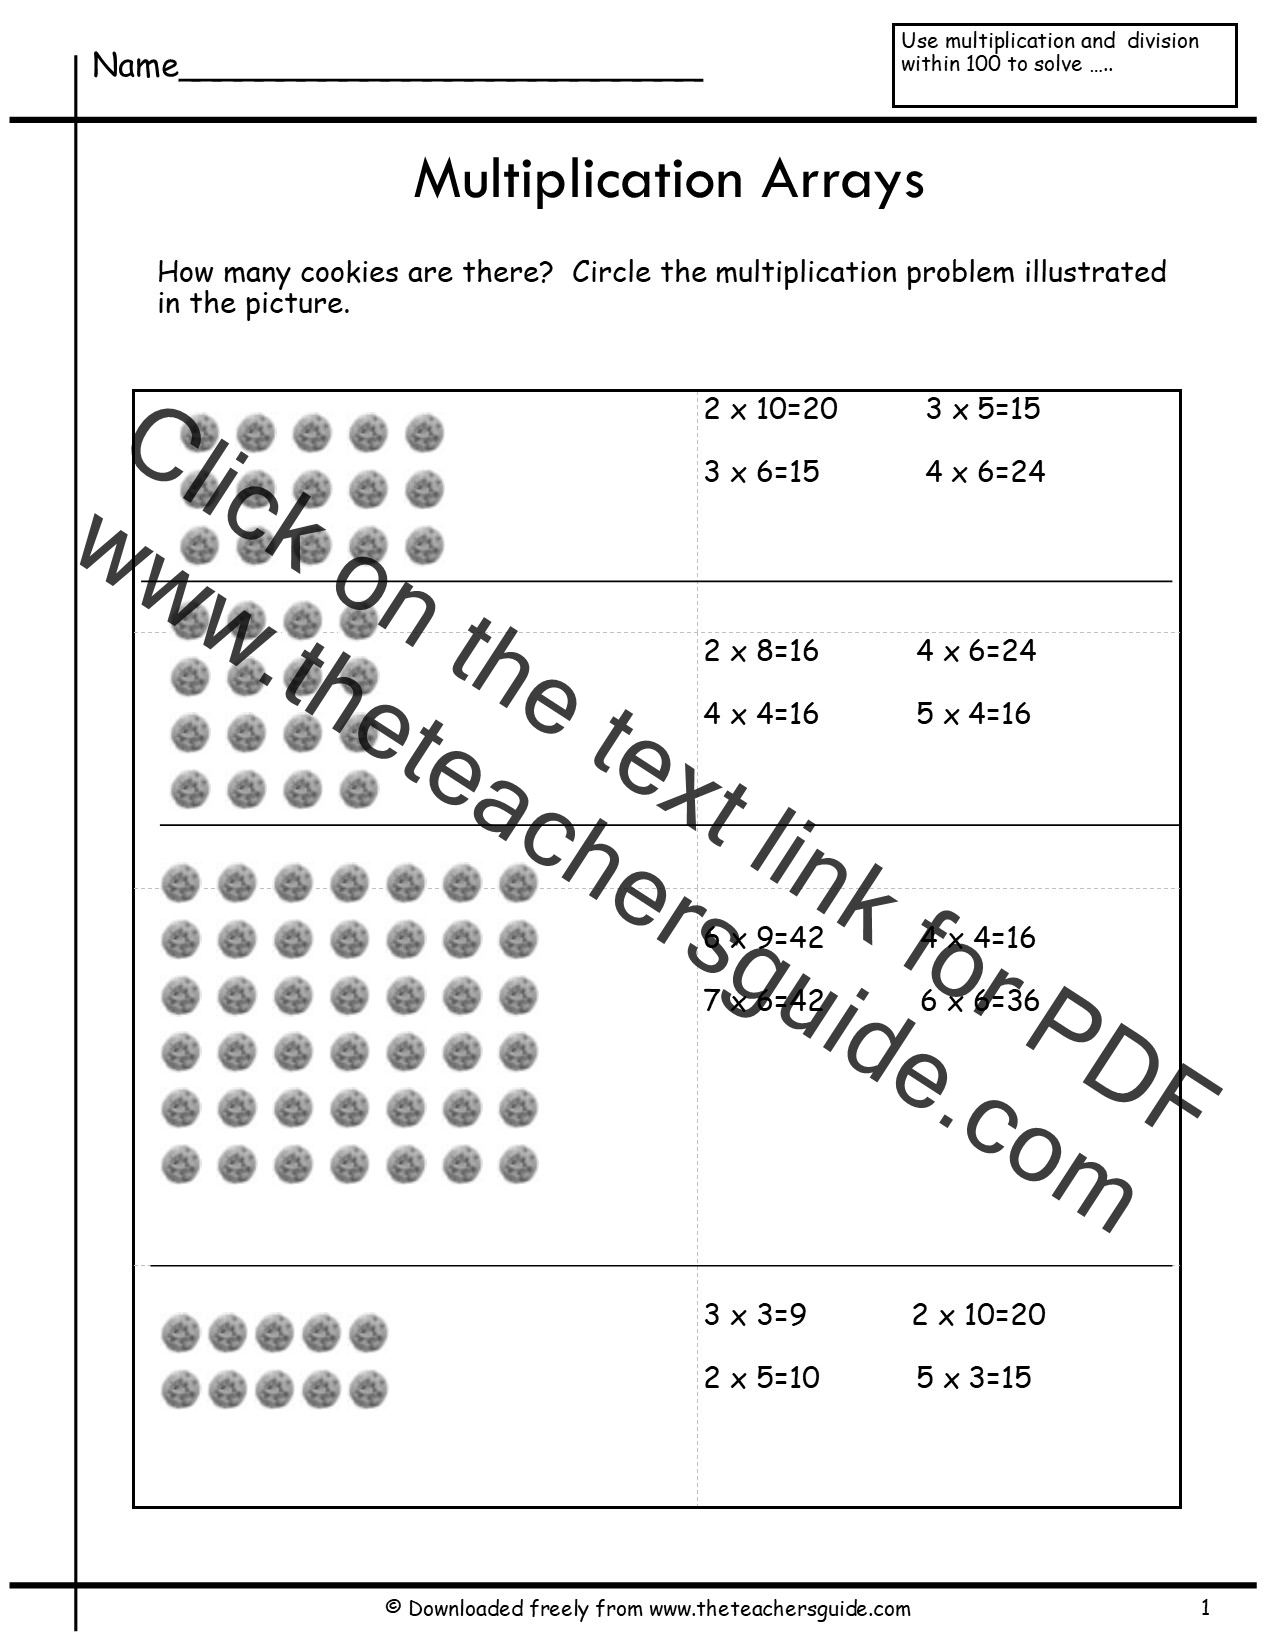 Multiplication Array Worksheets From The Teacher S Guide